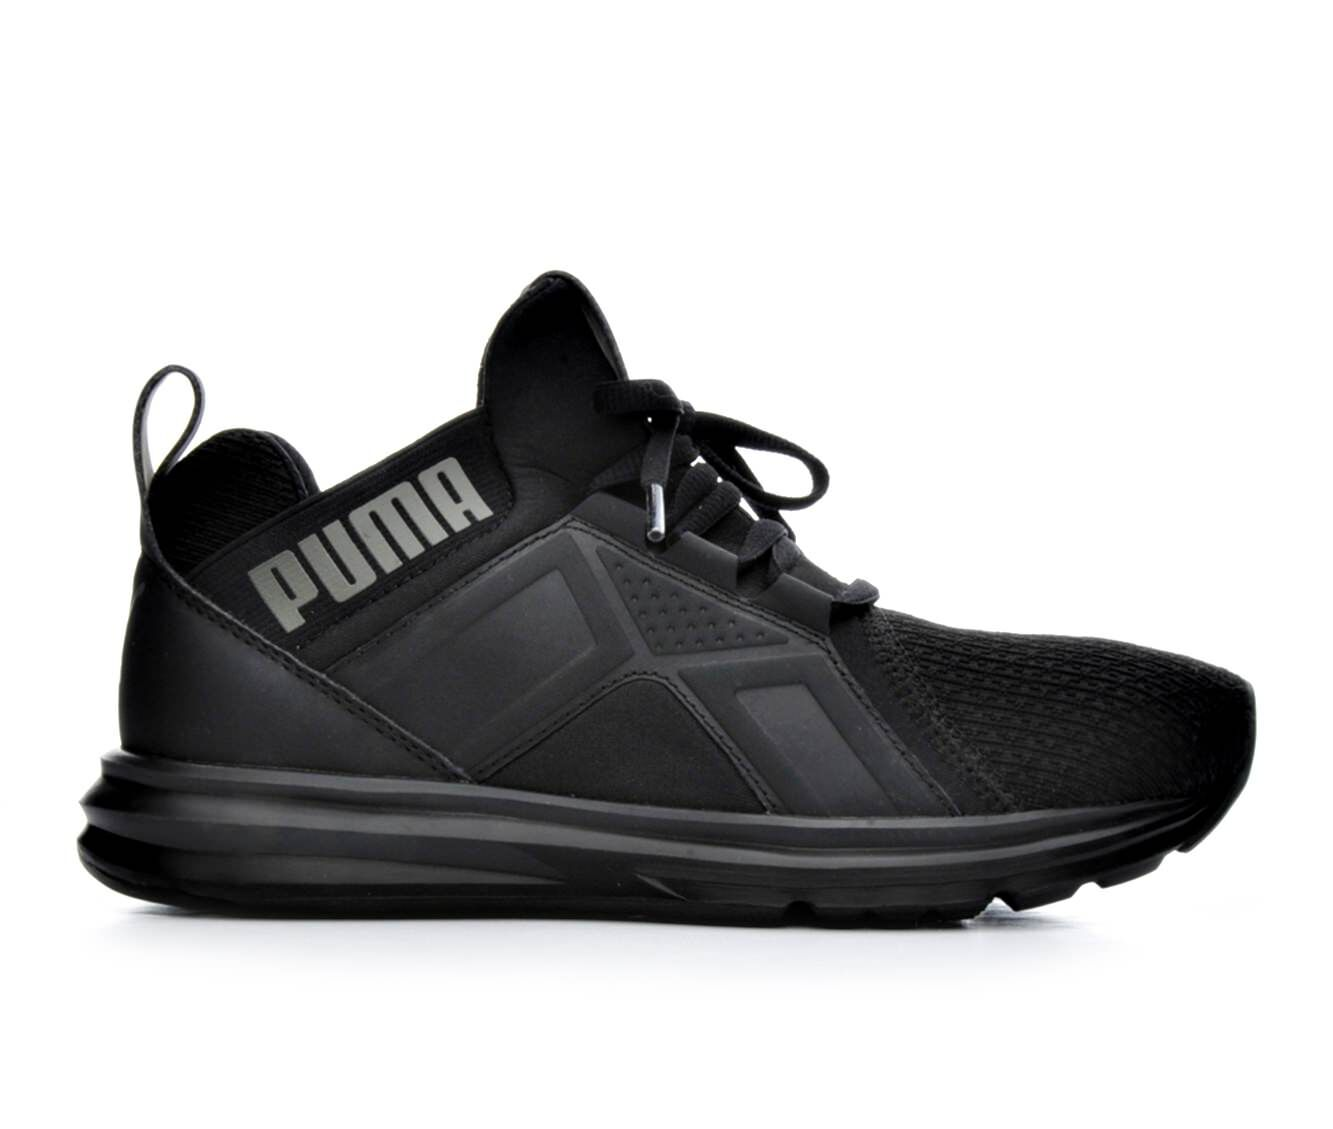 pictures of puma shoes